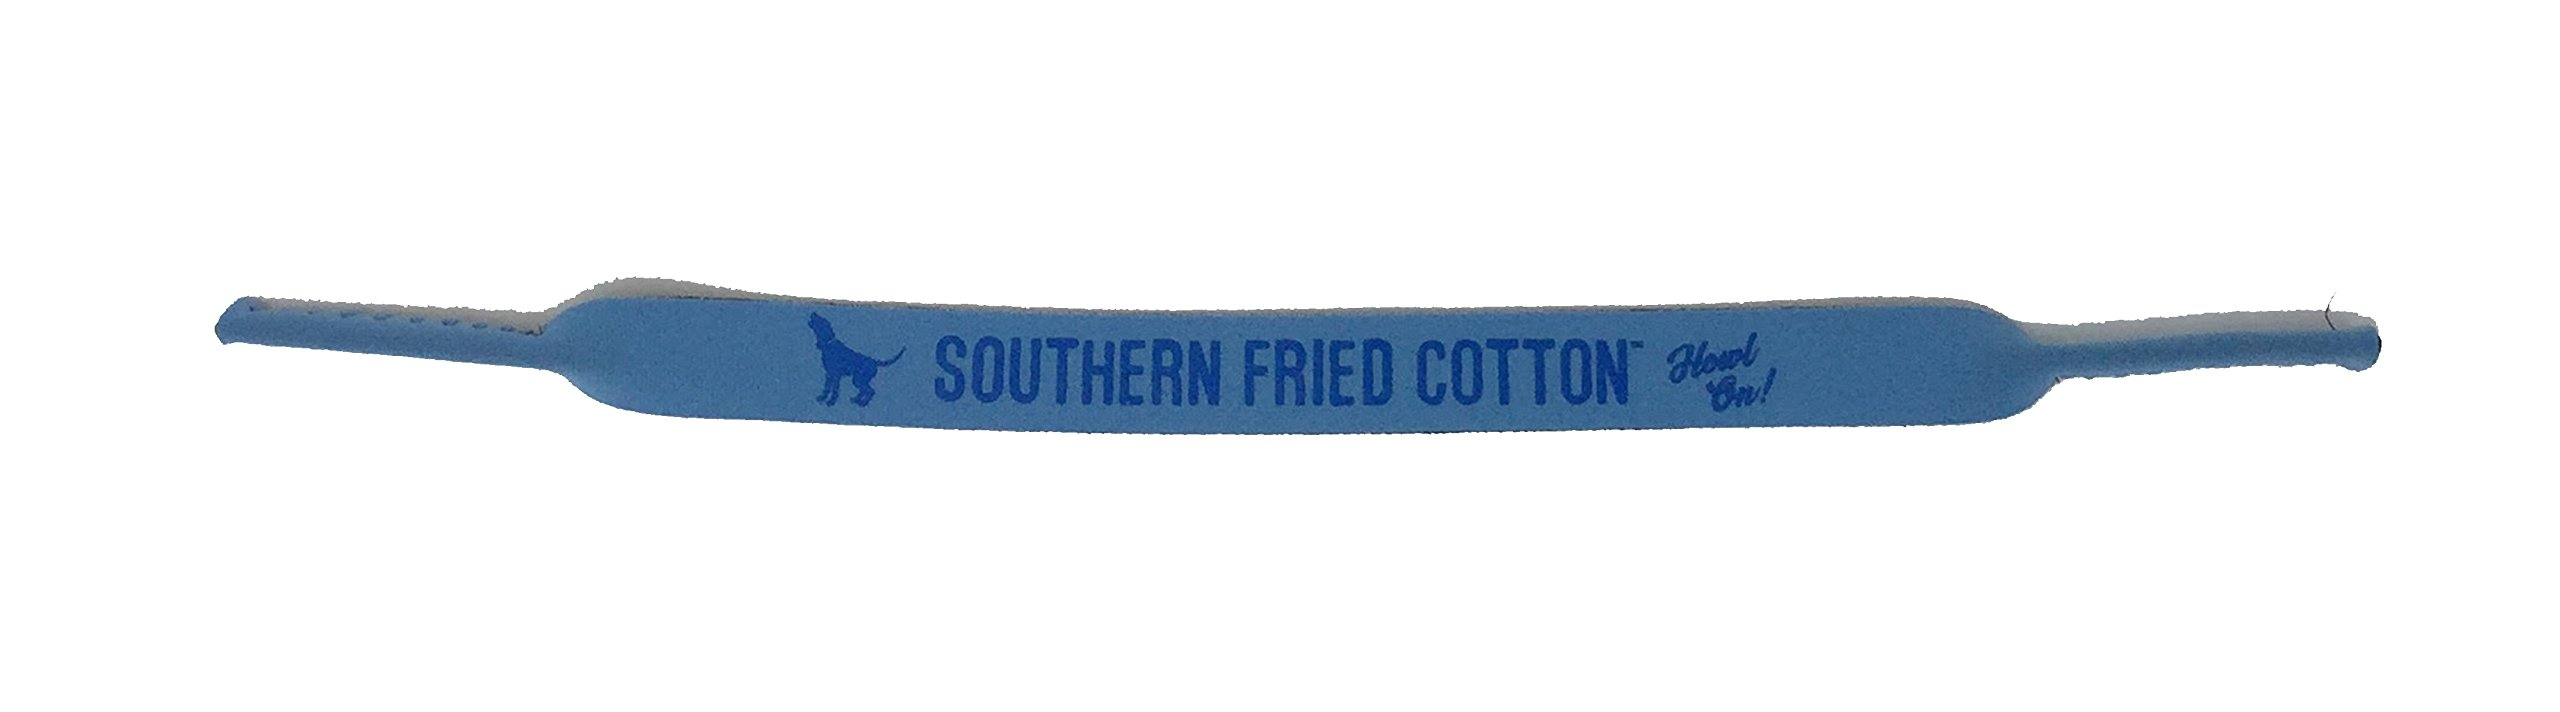 Southern Fried Cotton Howl On Sunglass Strap-Sky by Southern Fried Cotton